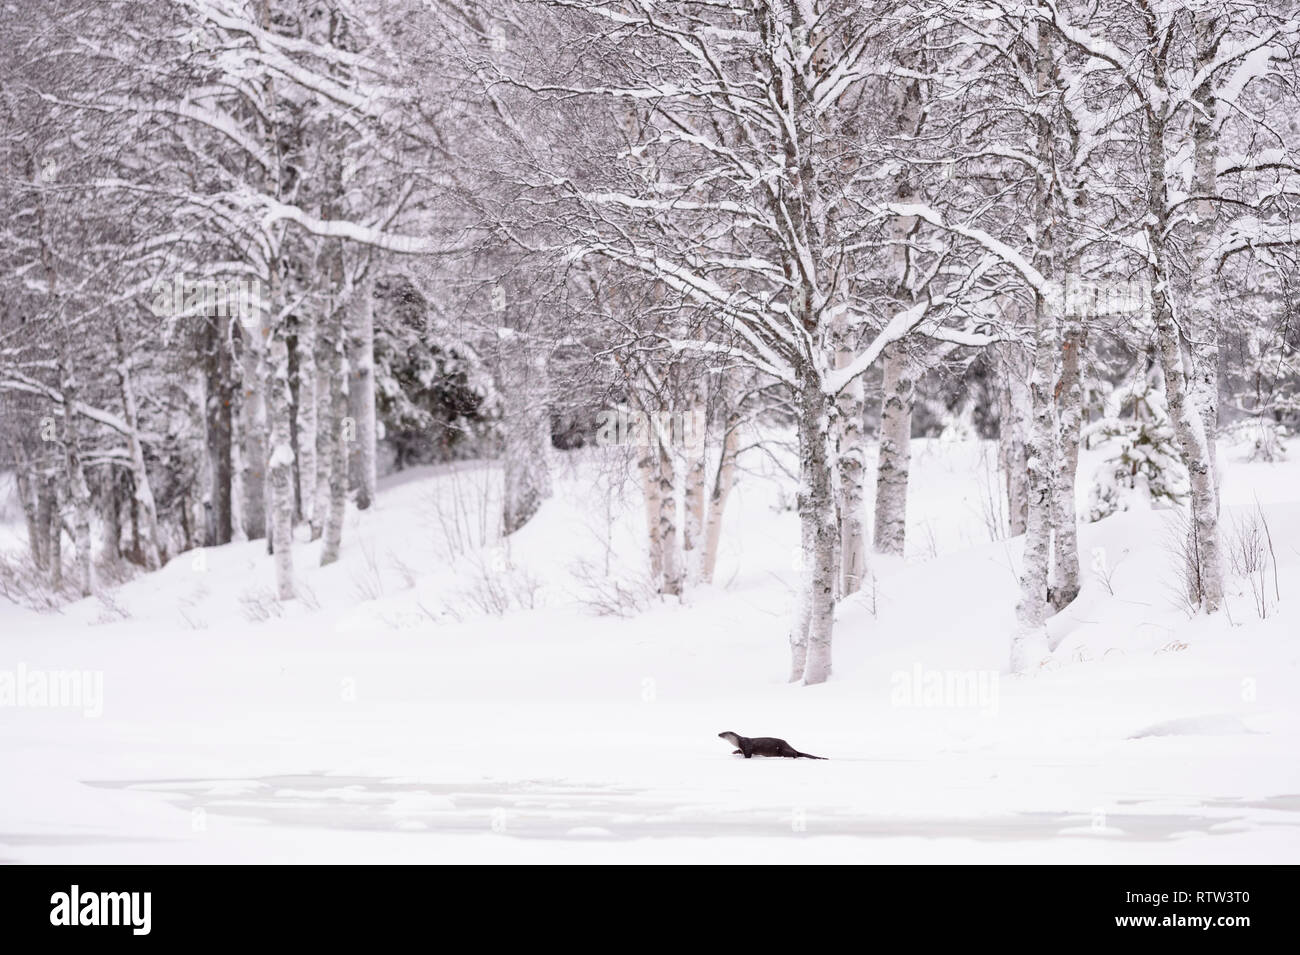 European river otter in a winter landscape with snow on a frozen lake with birch trees covered in snow - Stock Image